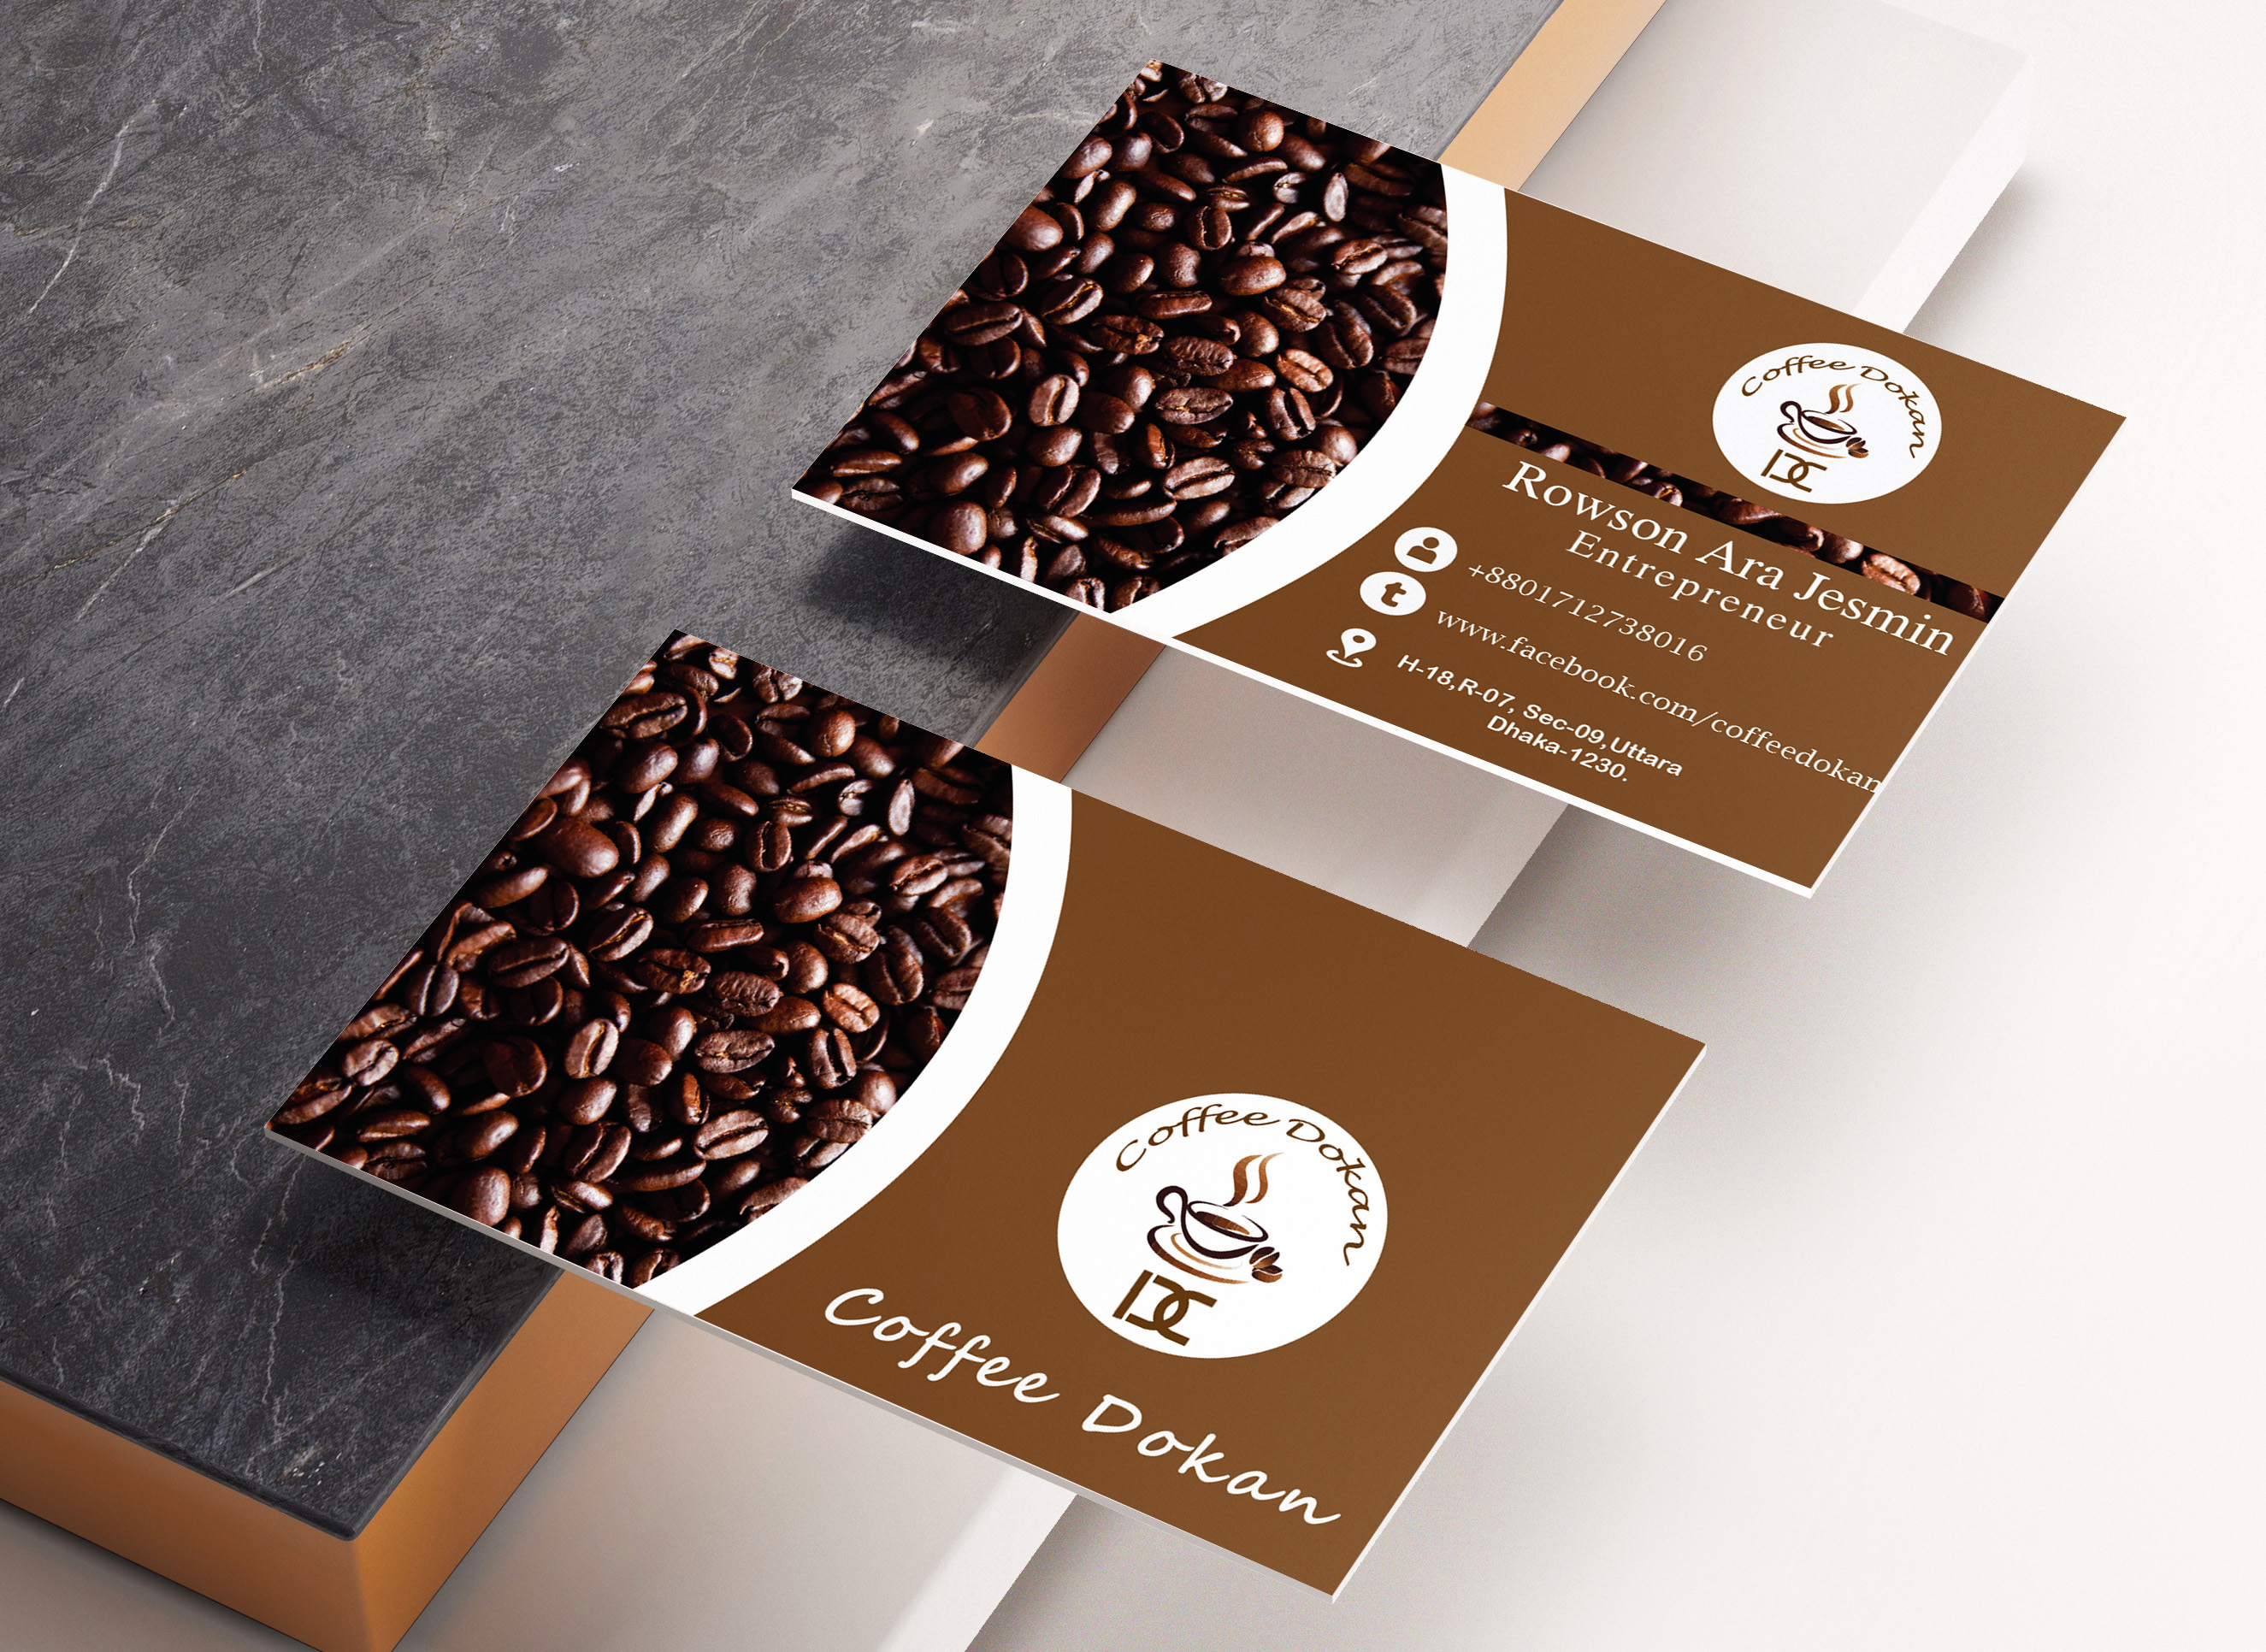 I will luxury business card design within 24 hours